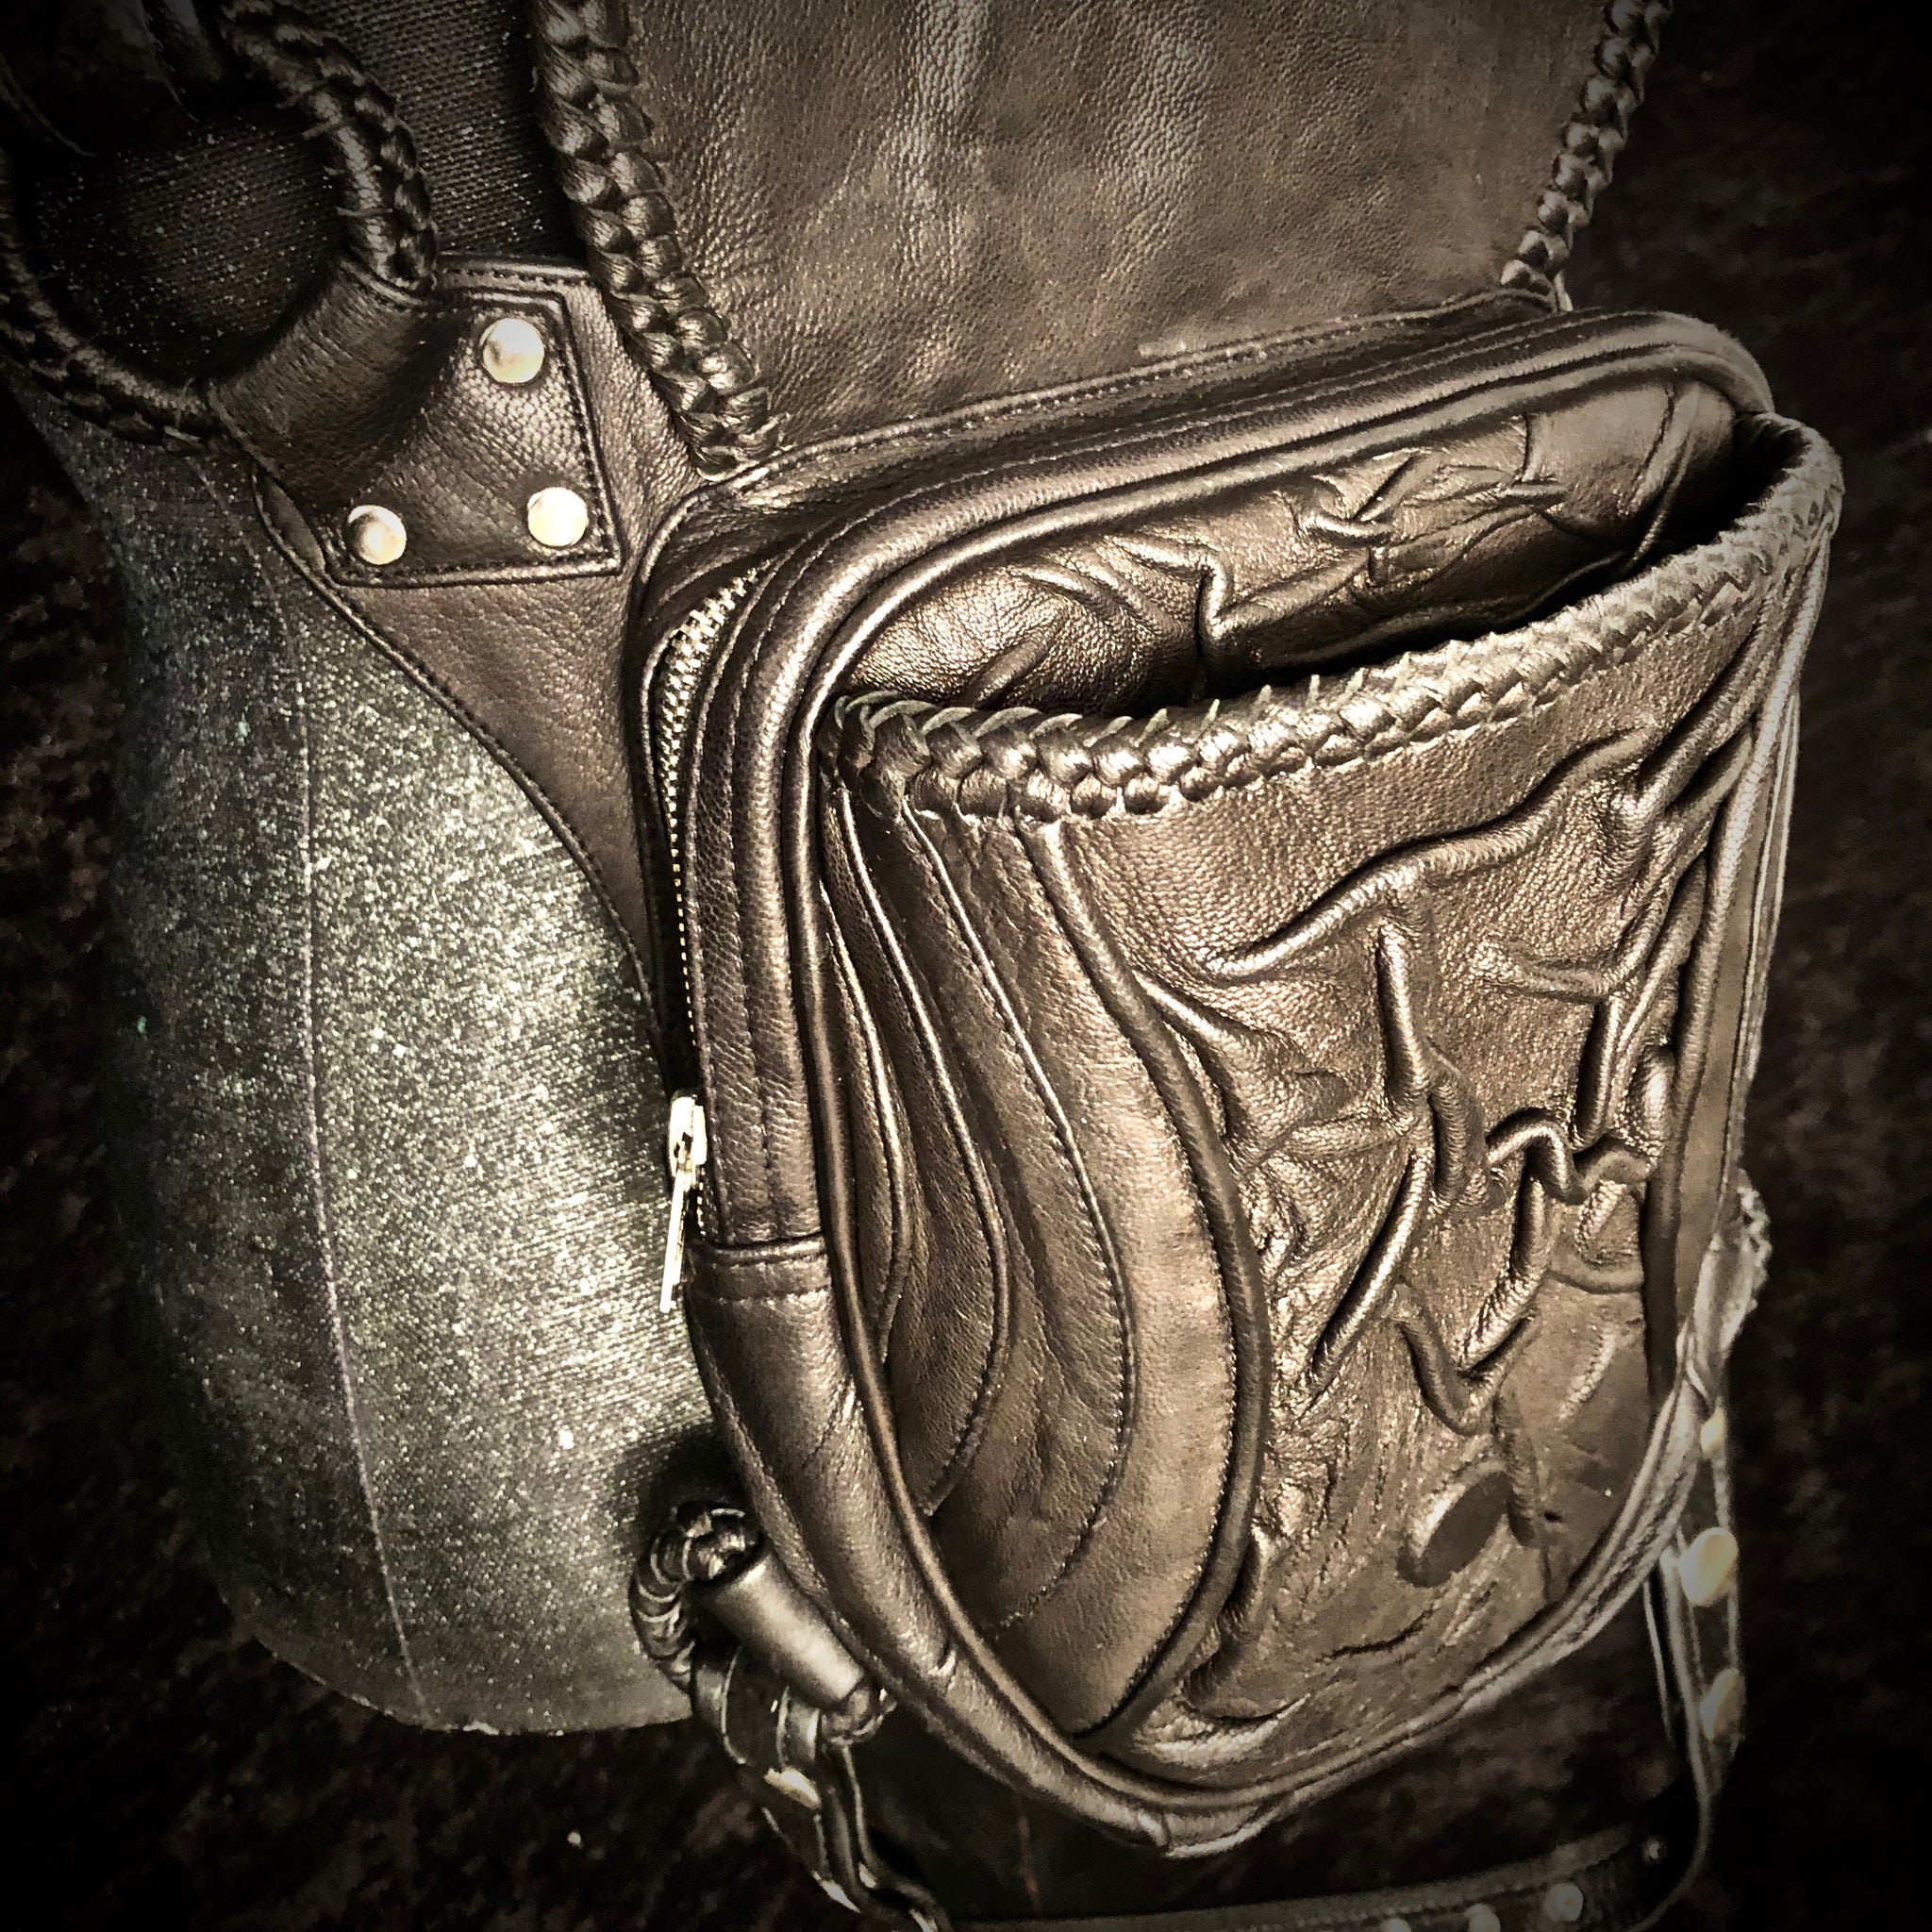 Alien Spine Holster / Purse Bag